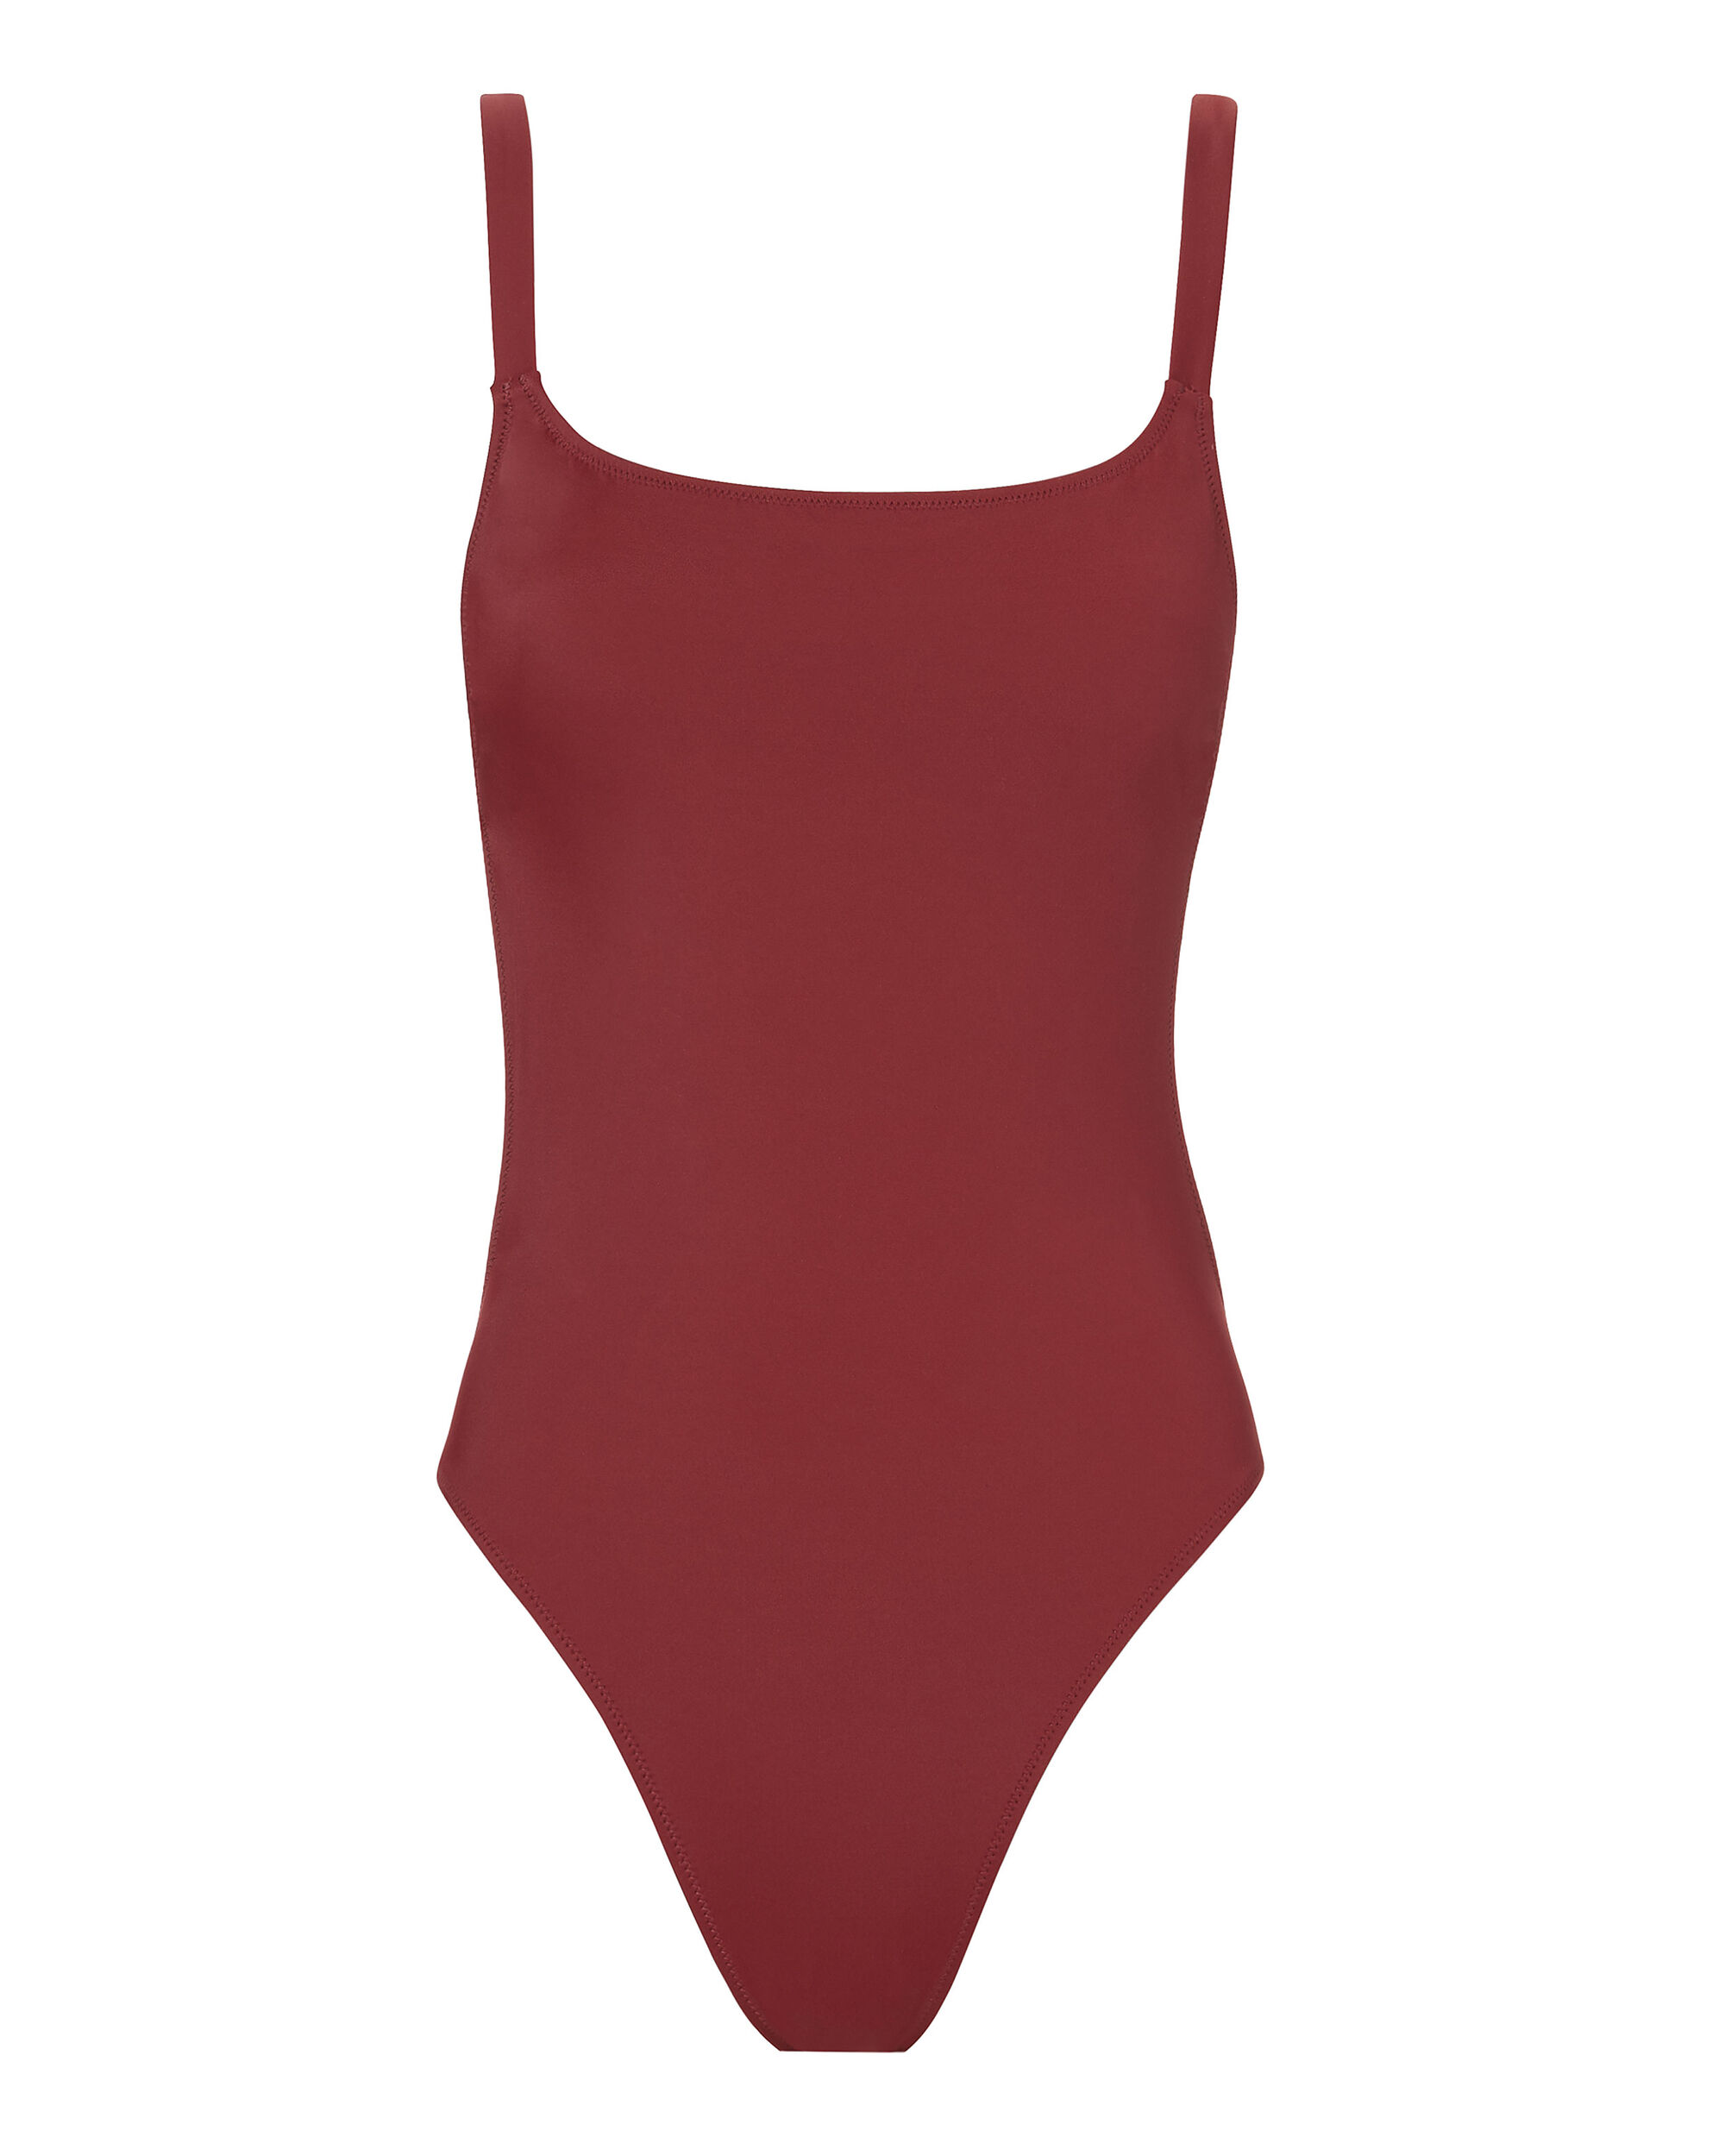 Toni One Piece Swimsuit, RED-DRK, hi-res